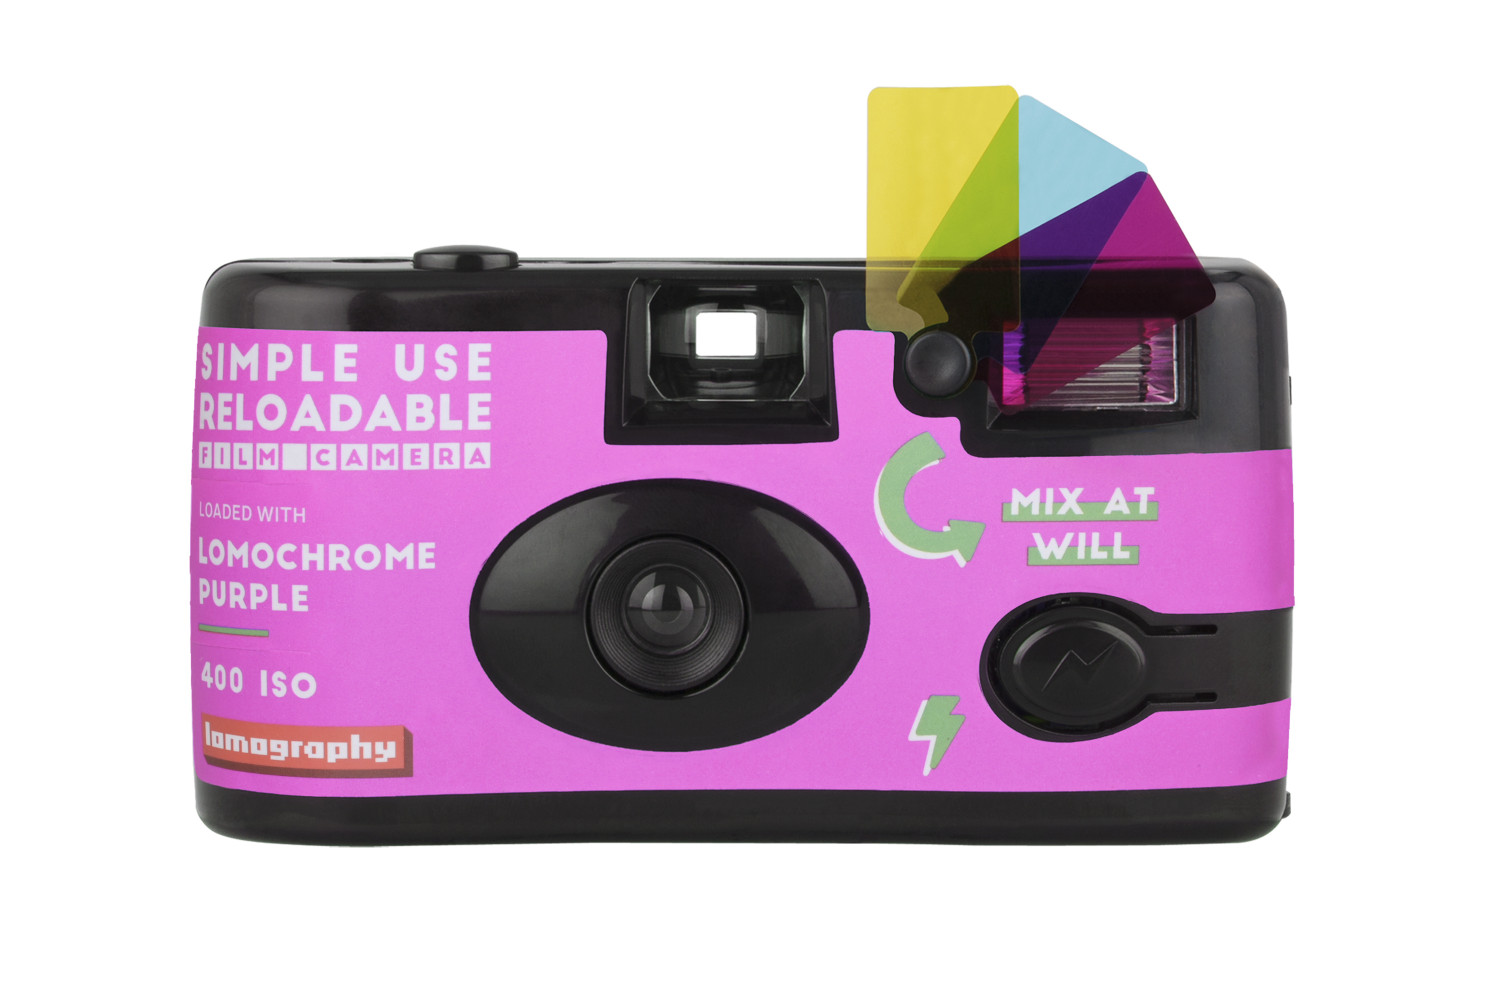 Simple Use Reusable Film Camera Lomochrome Purple